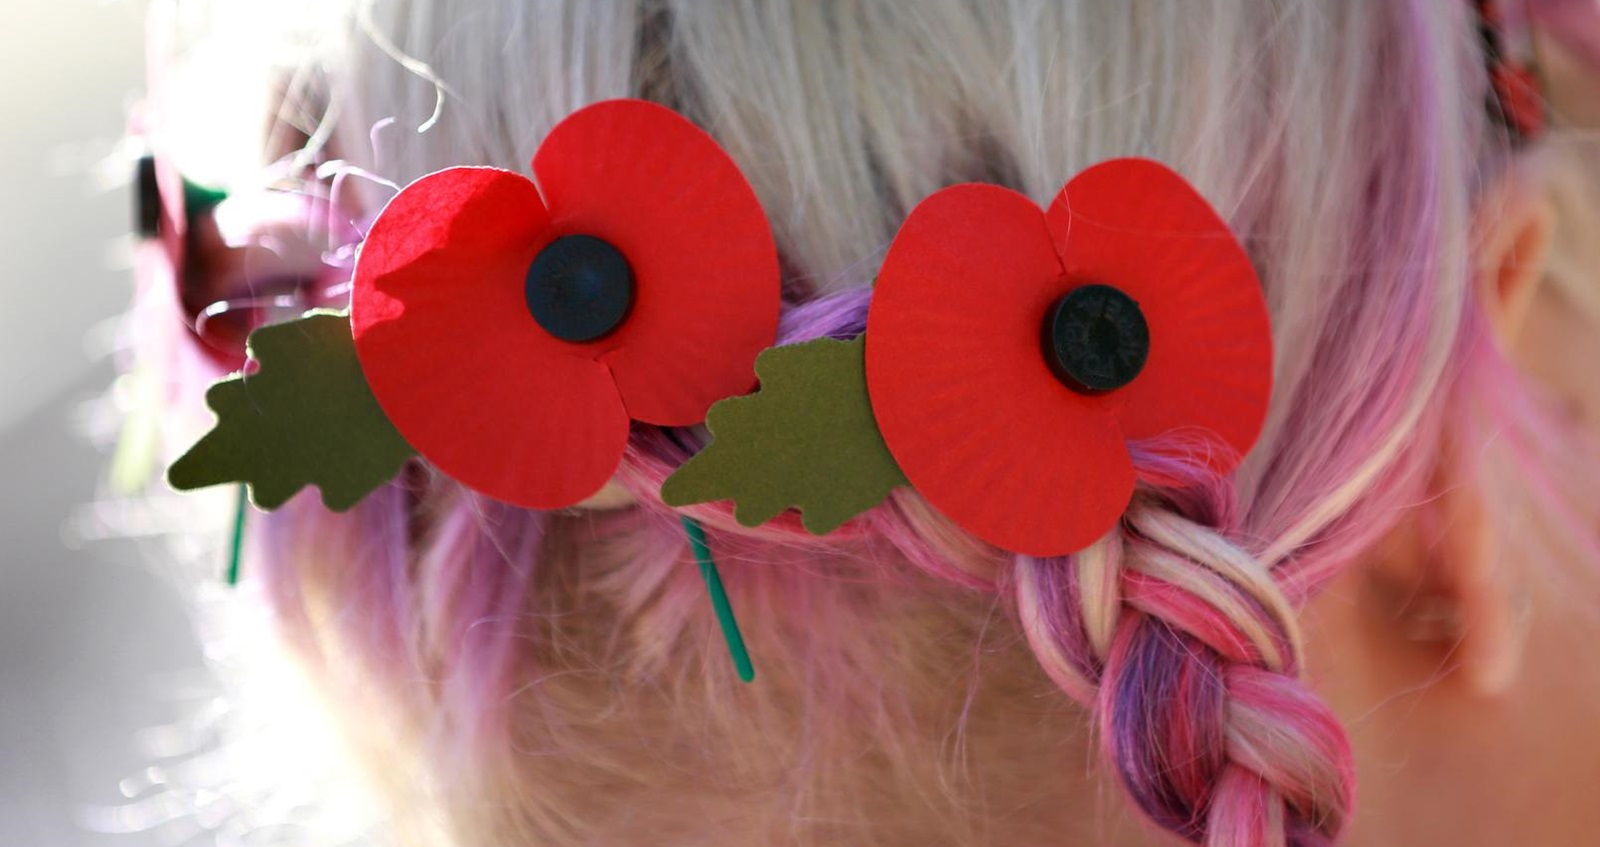 A volunteer wearing poppies in her hair